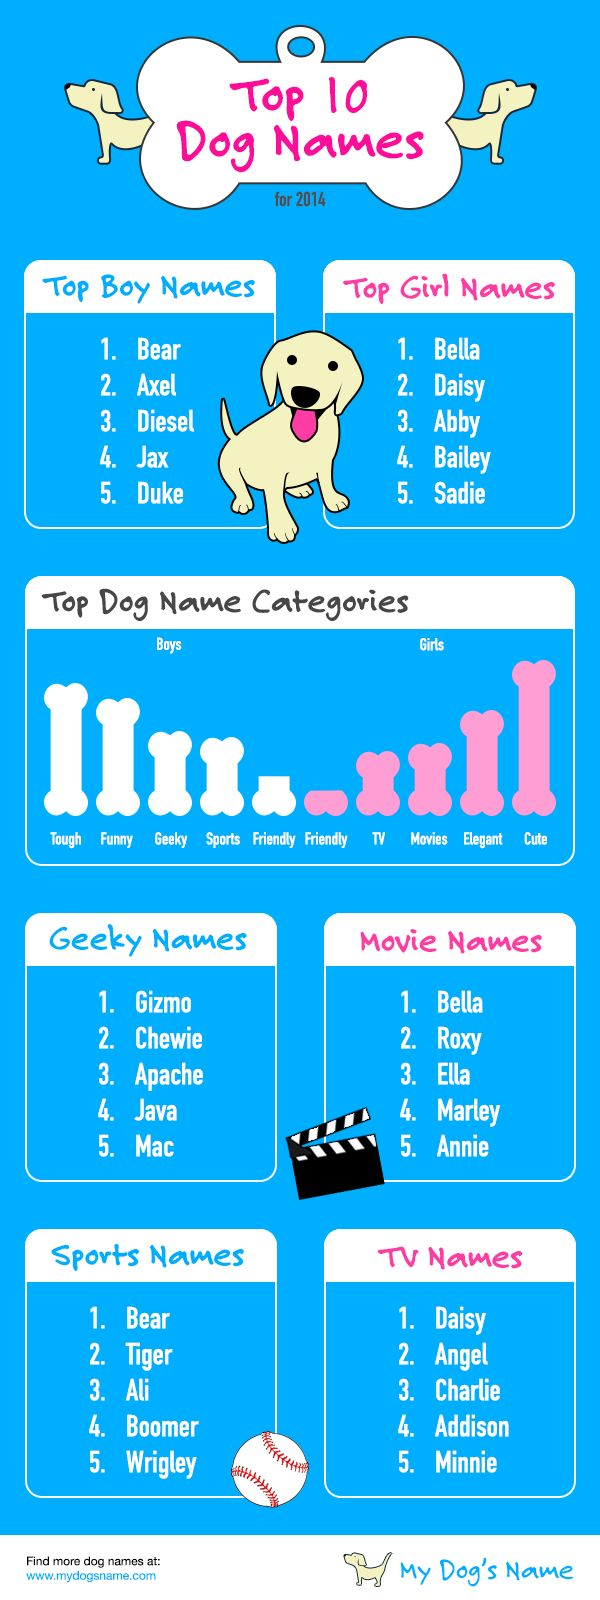 Top 10 dog names infographic